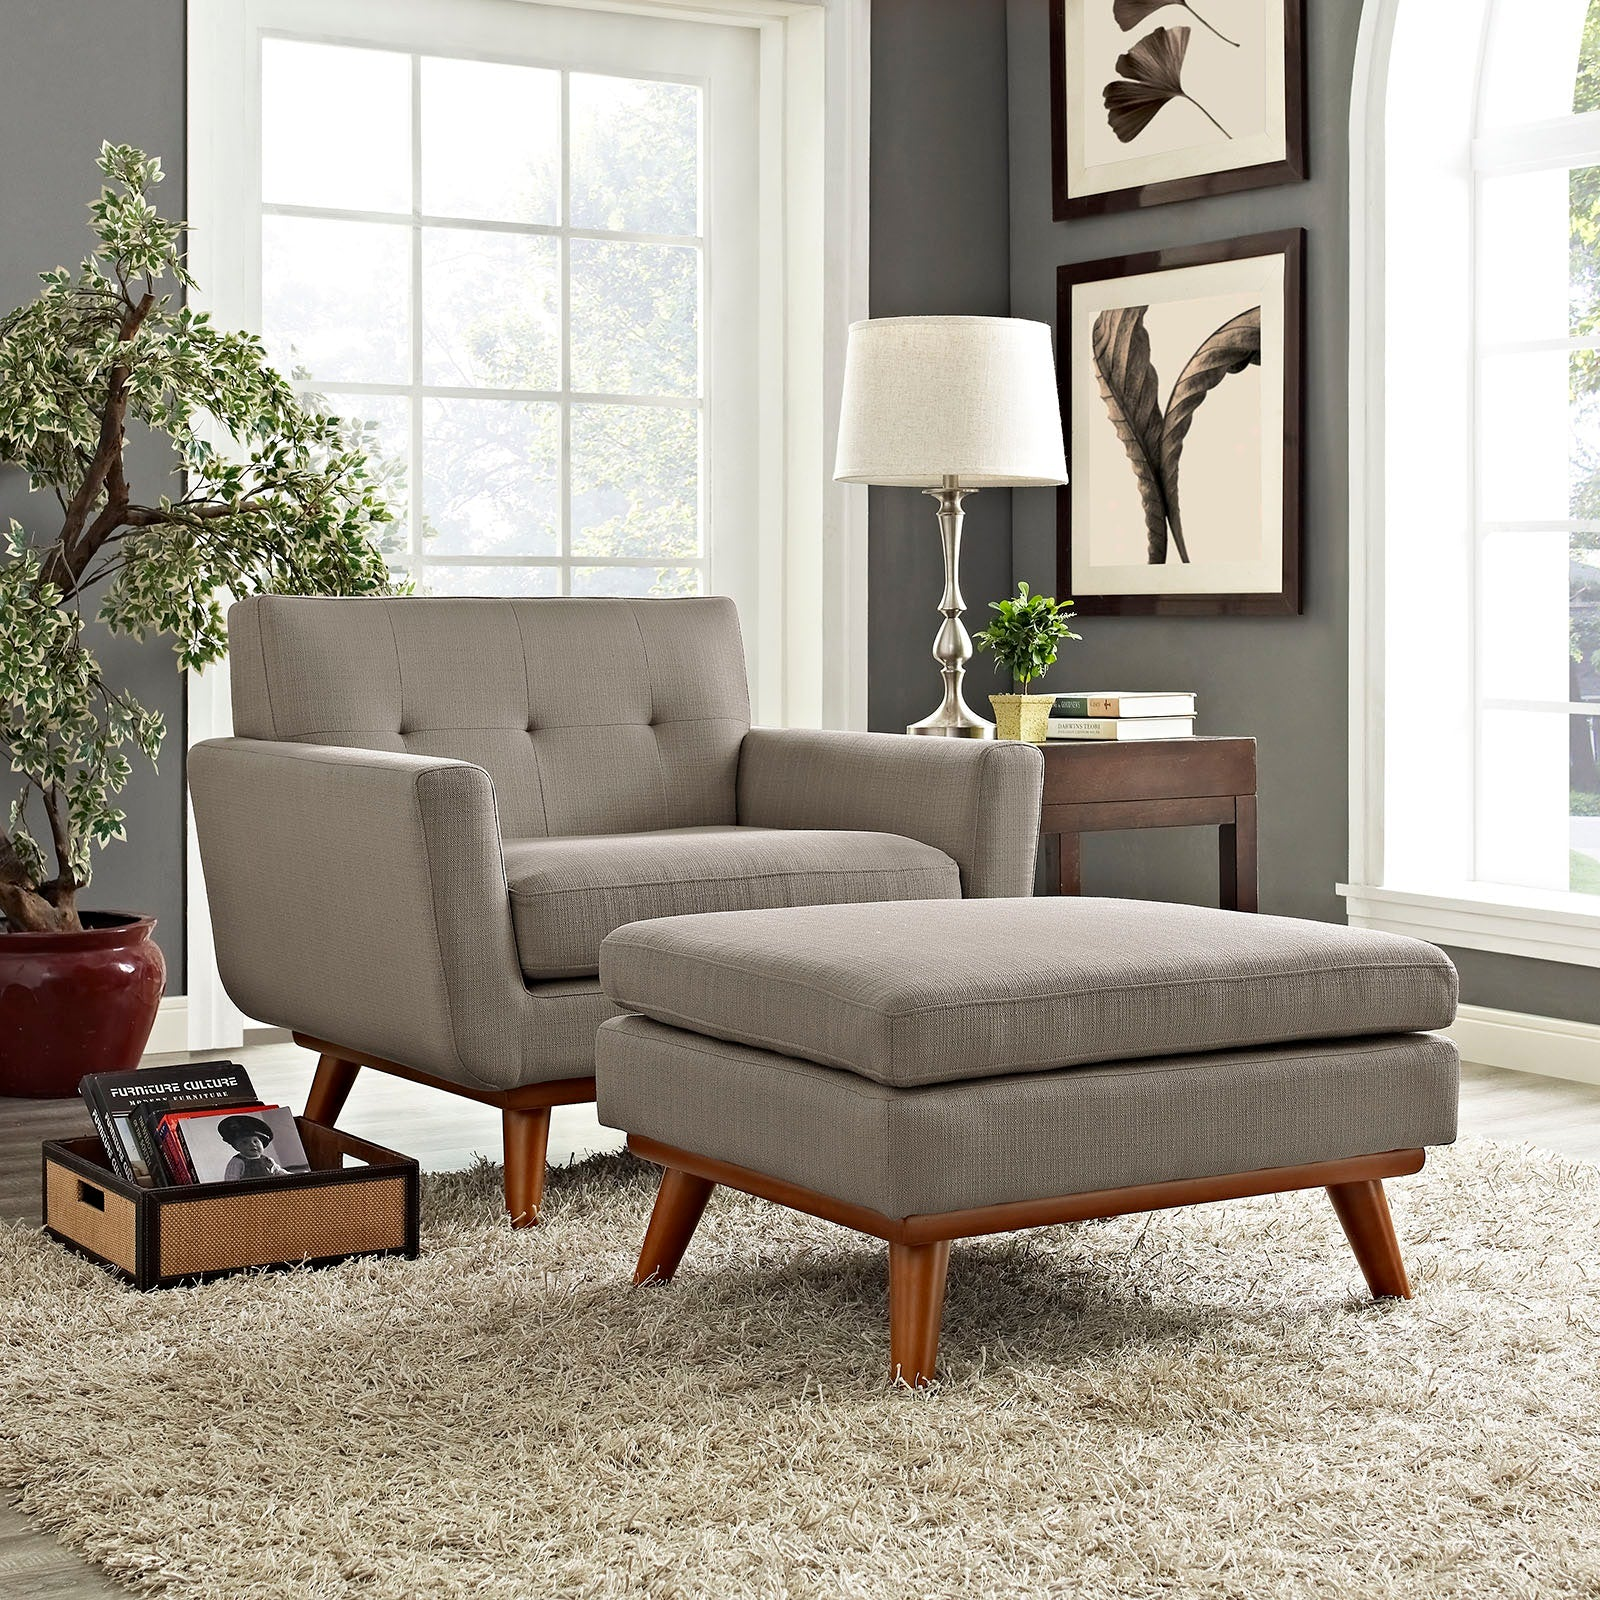 Engage 2 Piece Armchair and Ottoman - Granite